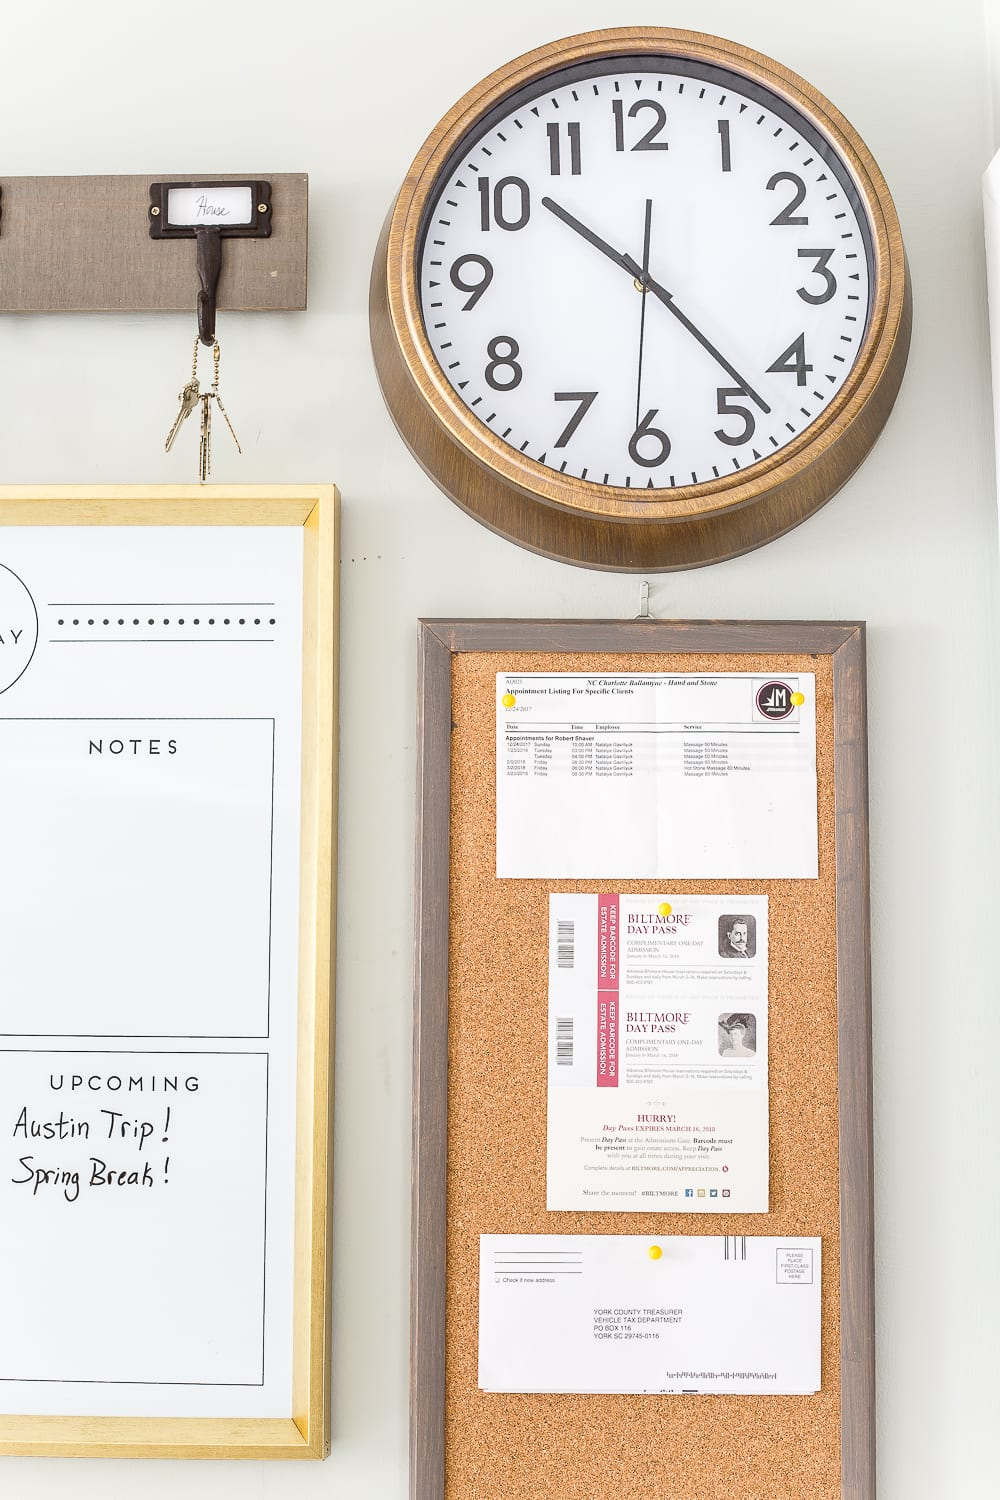 A junk-filled kitchen wall gets a drastic makeover with a simple command center using smart ways to keep mail, schedules, keys, and documents organized.  #commandcenter #organization #mailorganizing